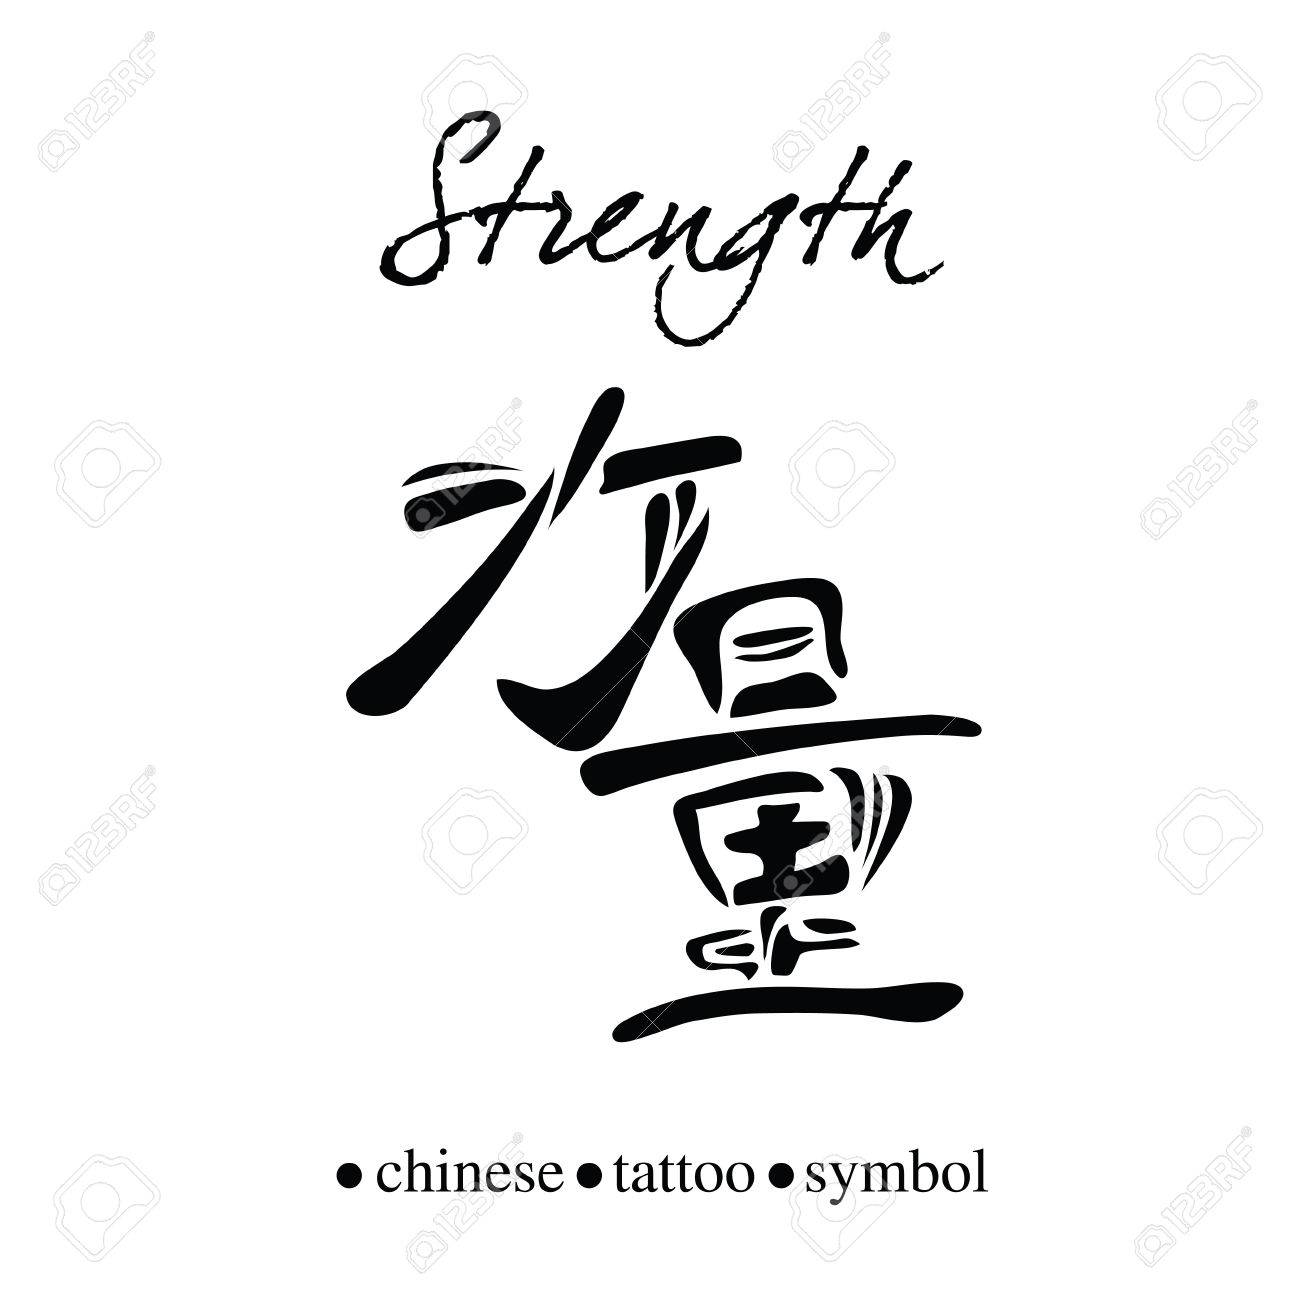 Chinese Character Calligraphy For Strength Or Power Royalty Free